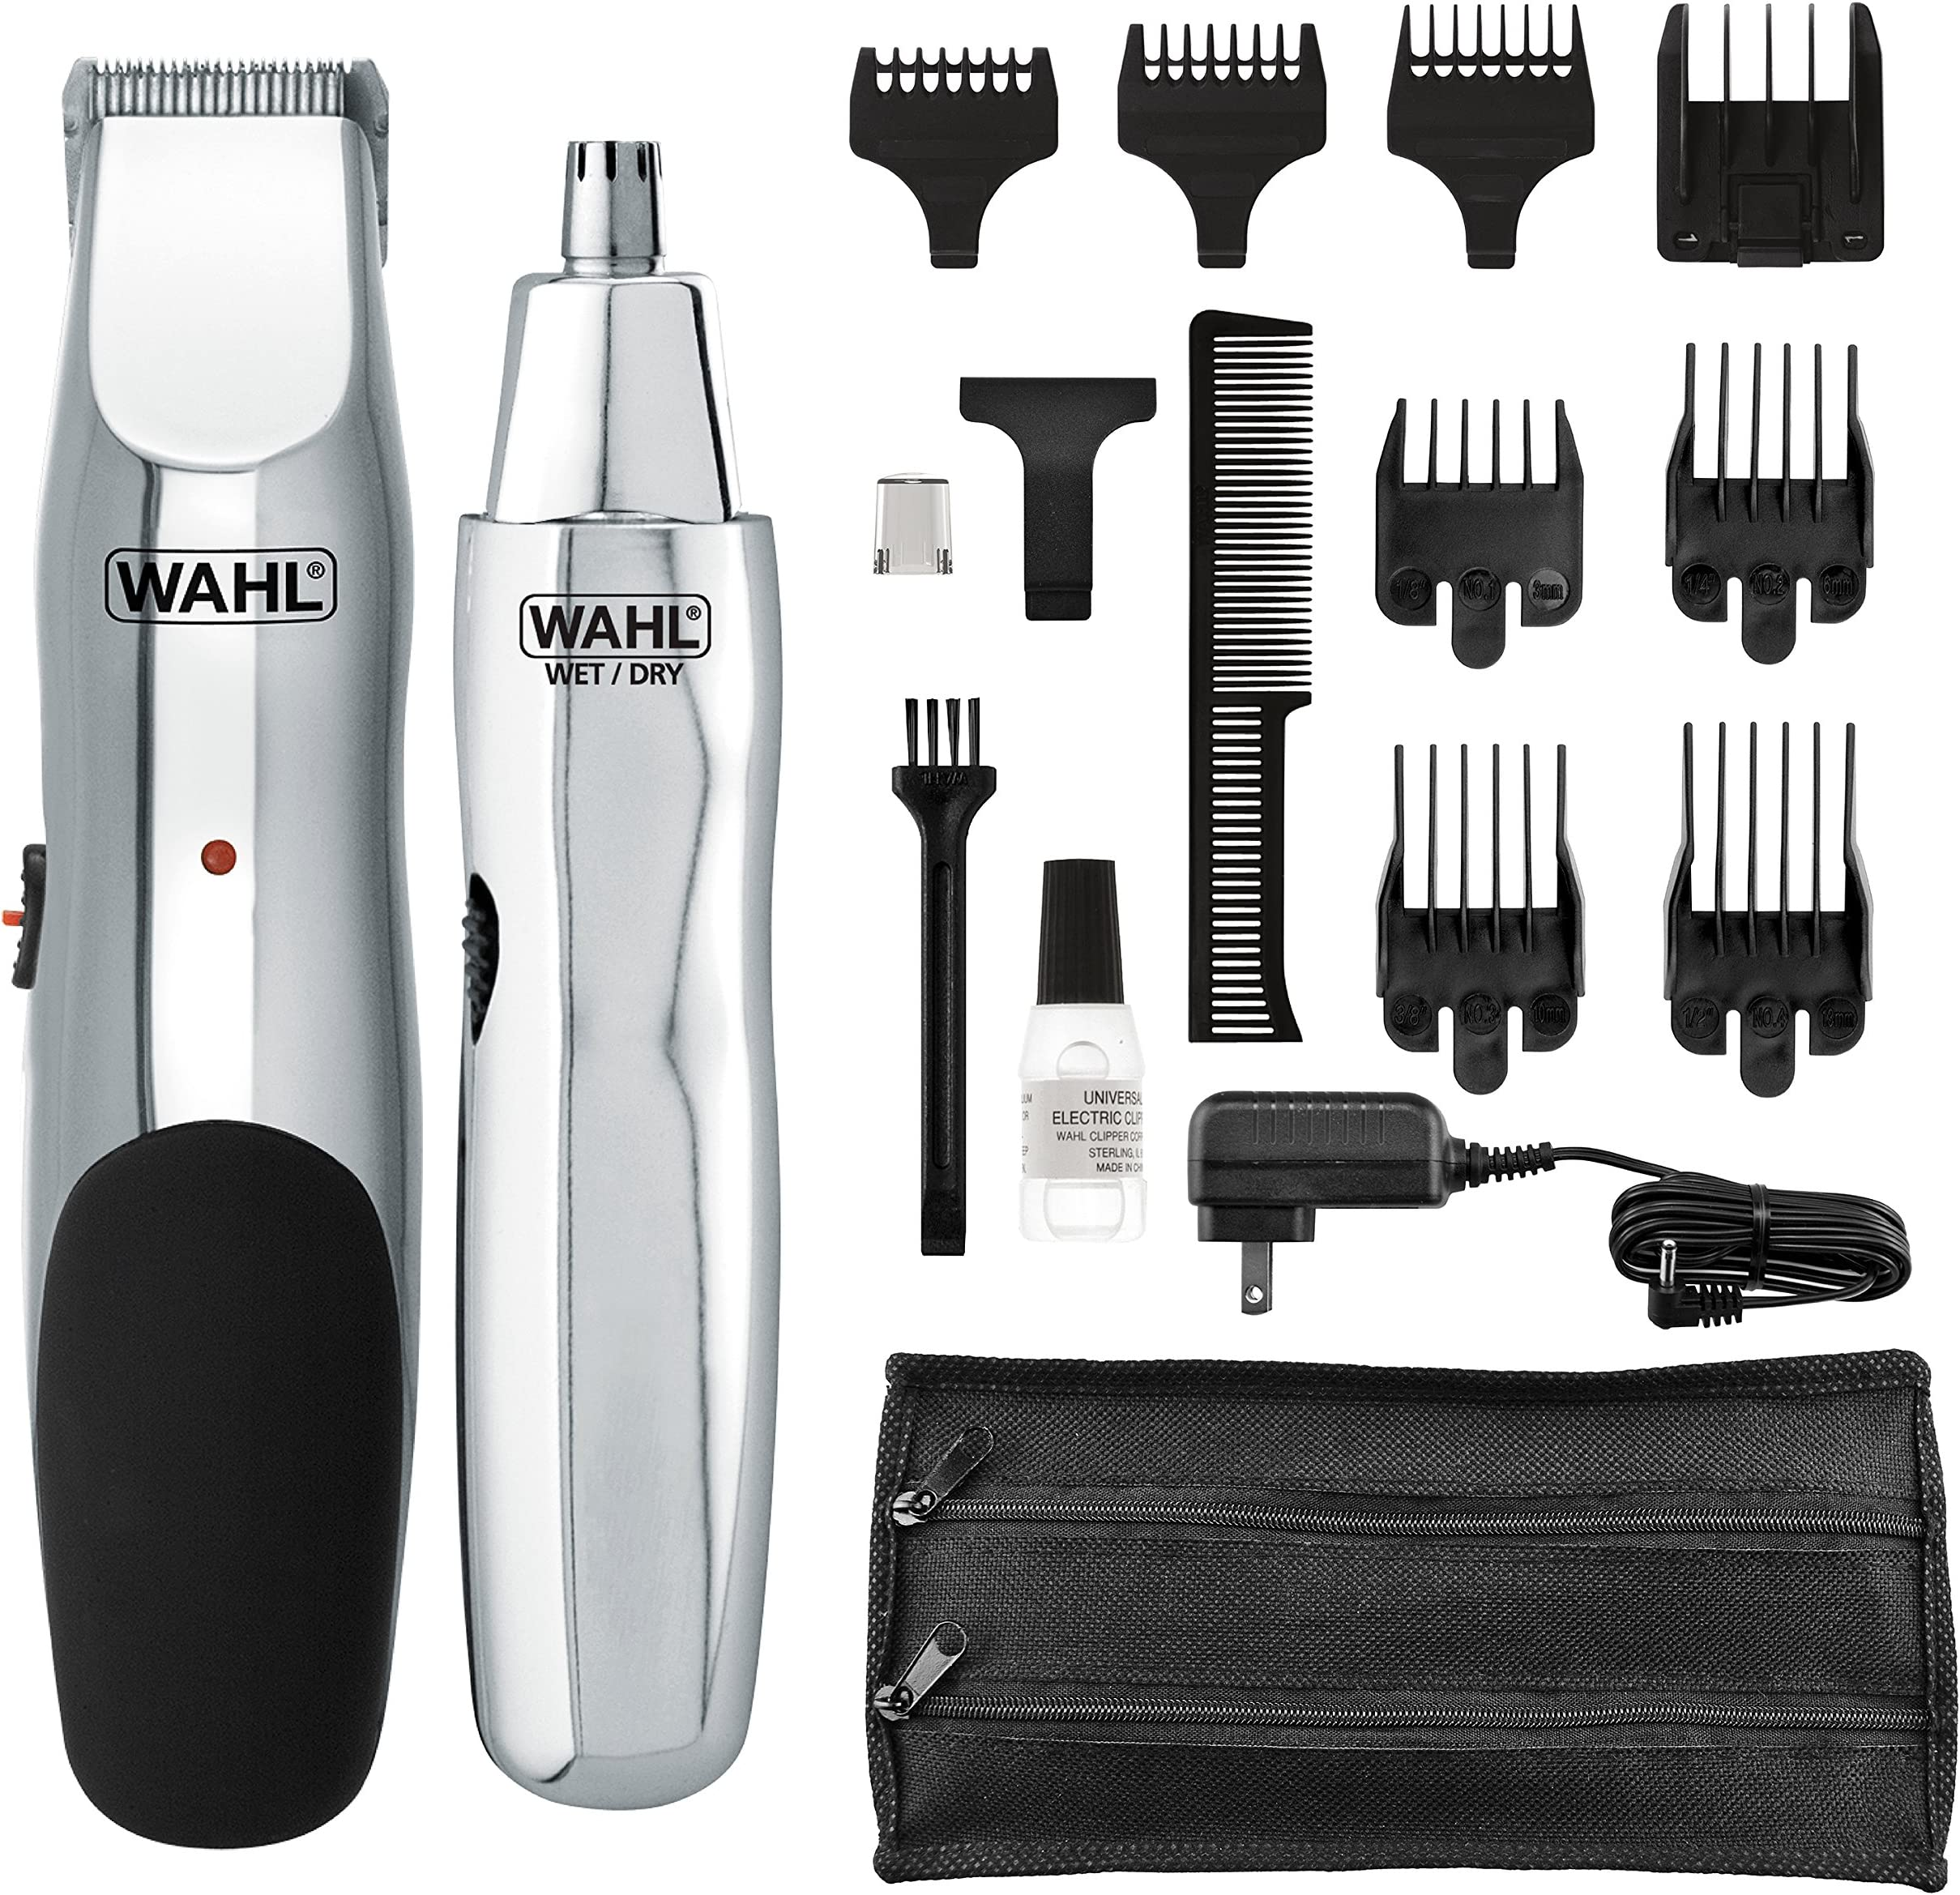 amazon com beard \u0026 mustache trimmers beauty \u0026 personal care  wahl groomsman rechargeable beard trimmer for beard, mustache, stubble with self sharpening blades and